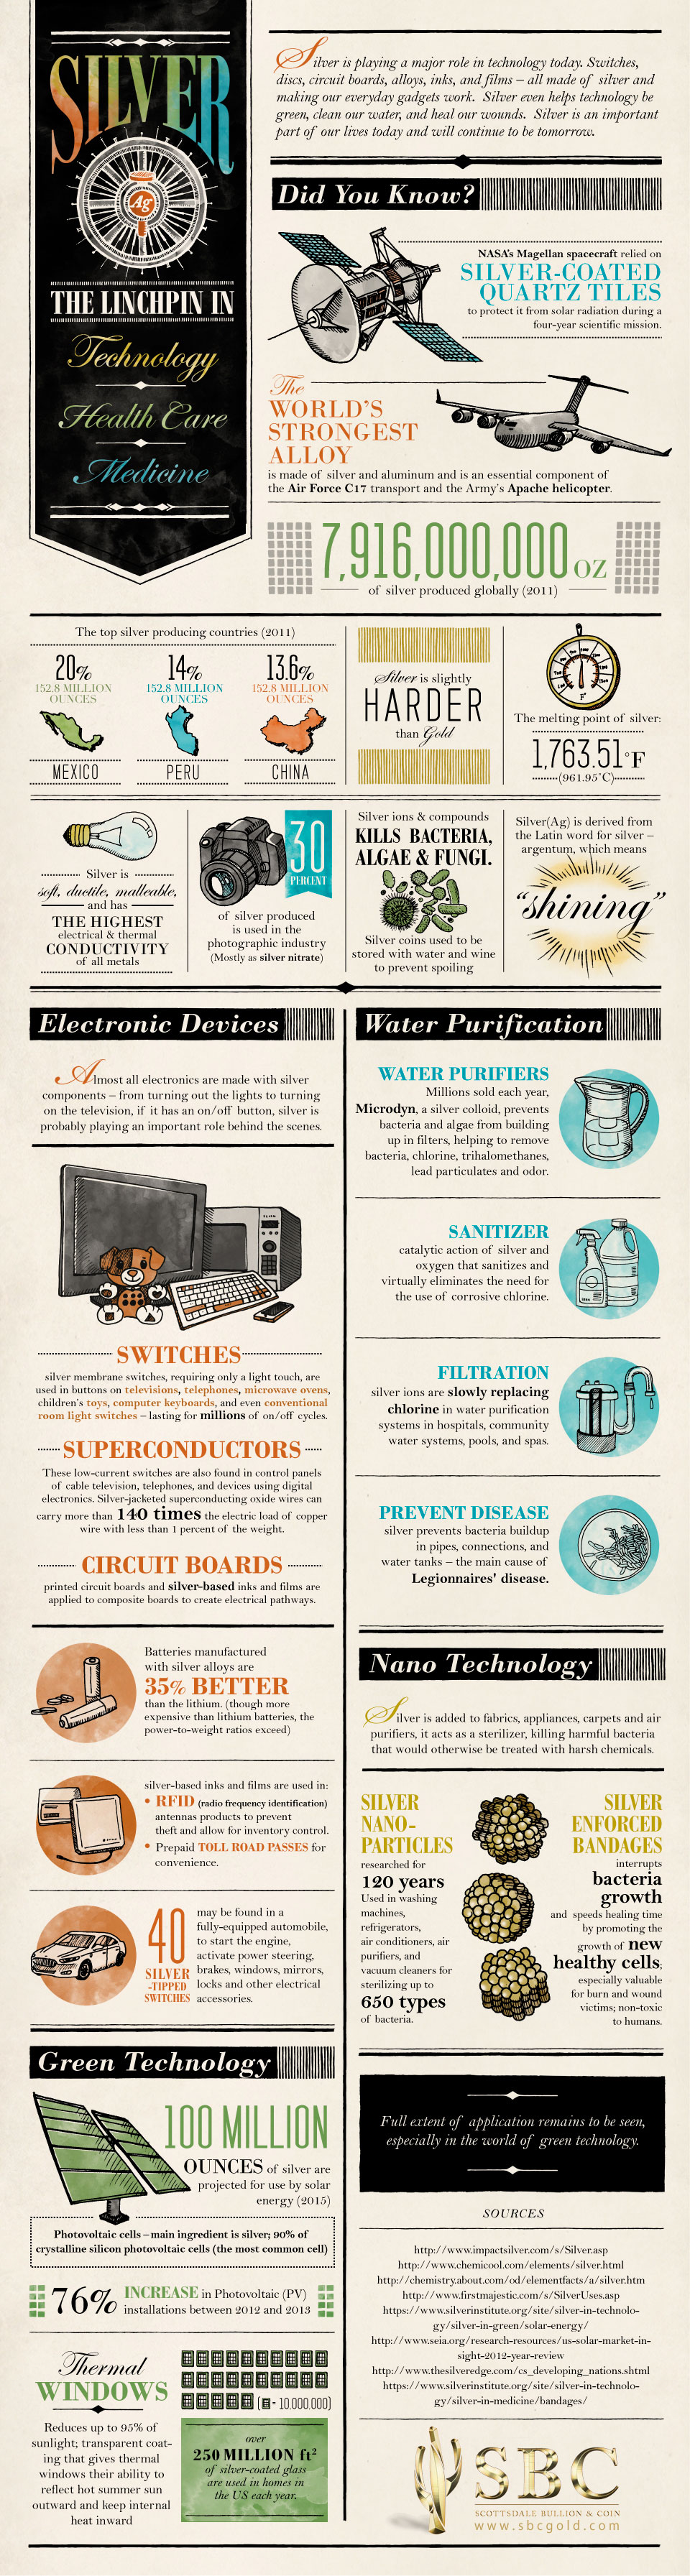 littleknown-facts-about-the-importance-of-silver-in-technology_525d50c50856d